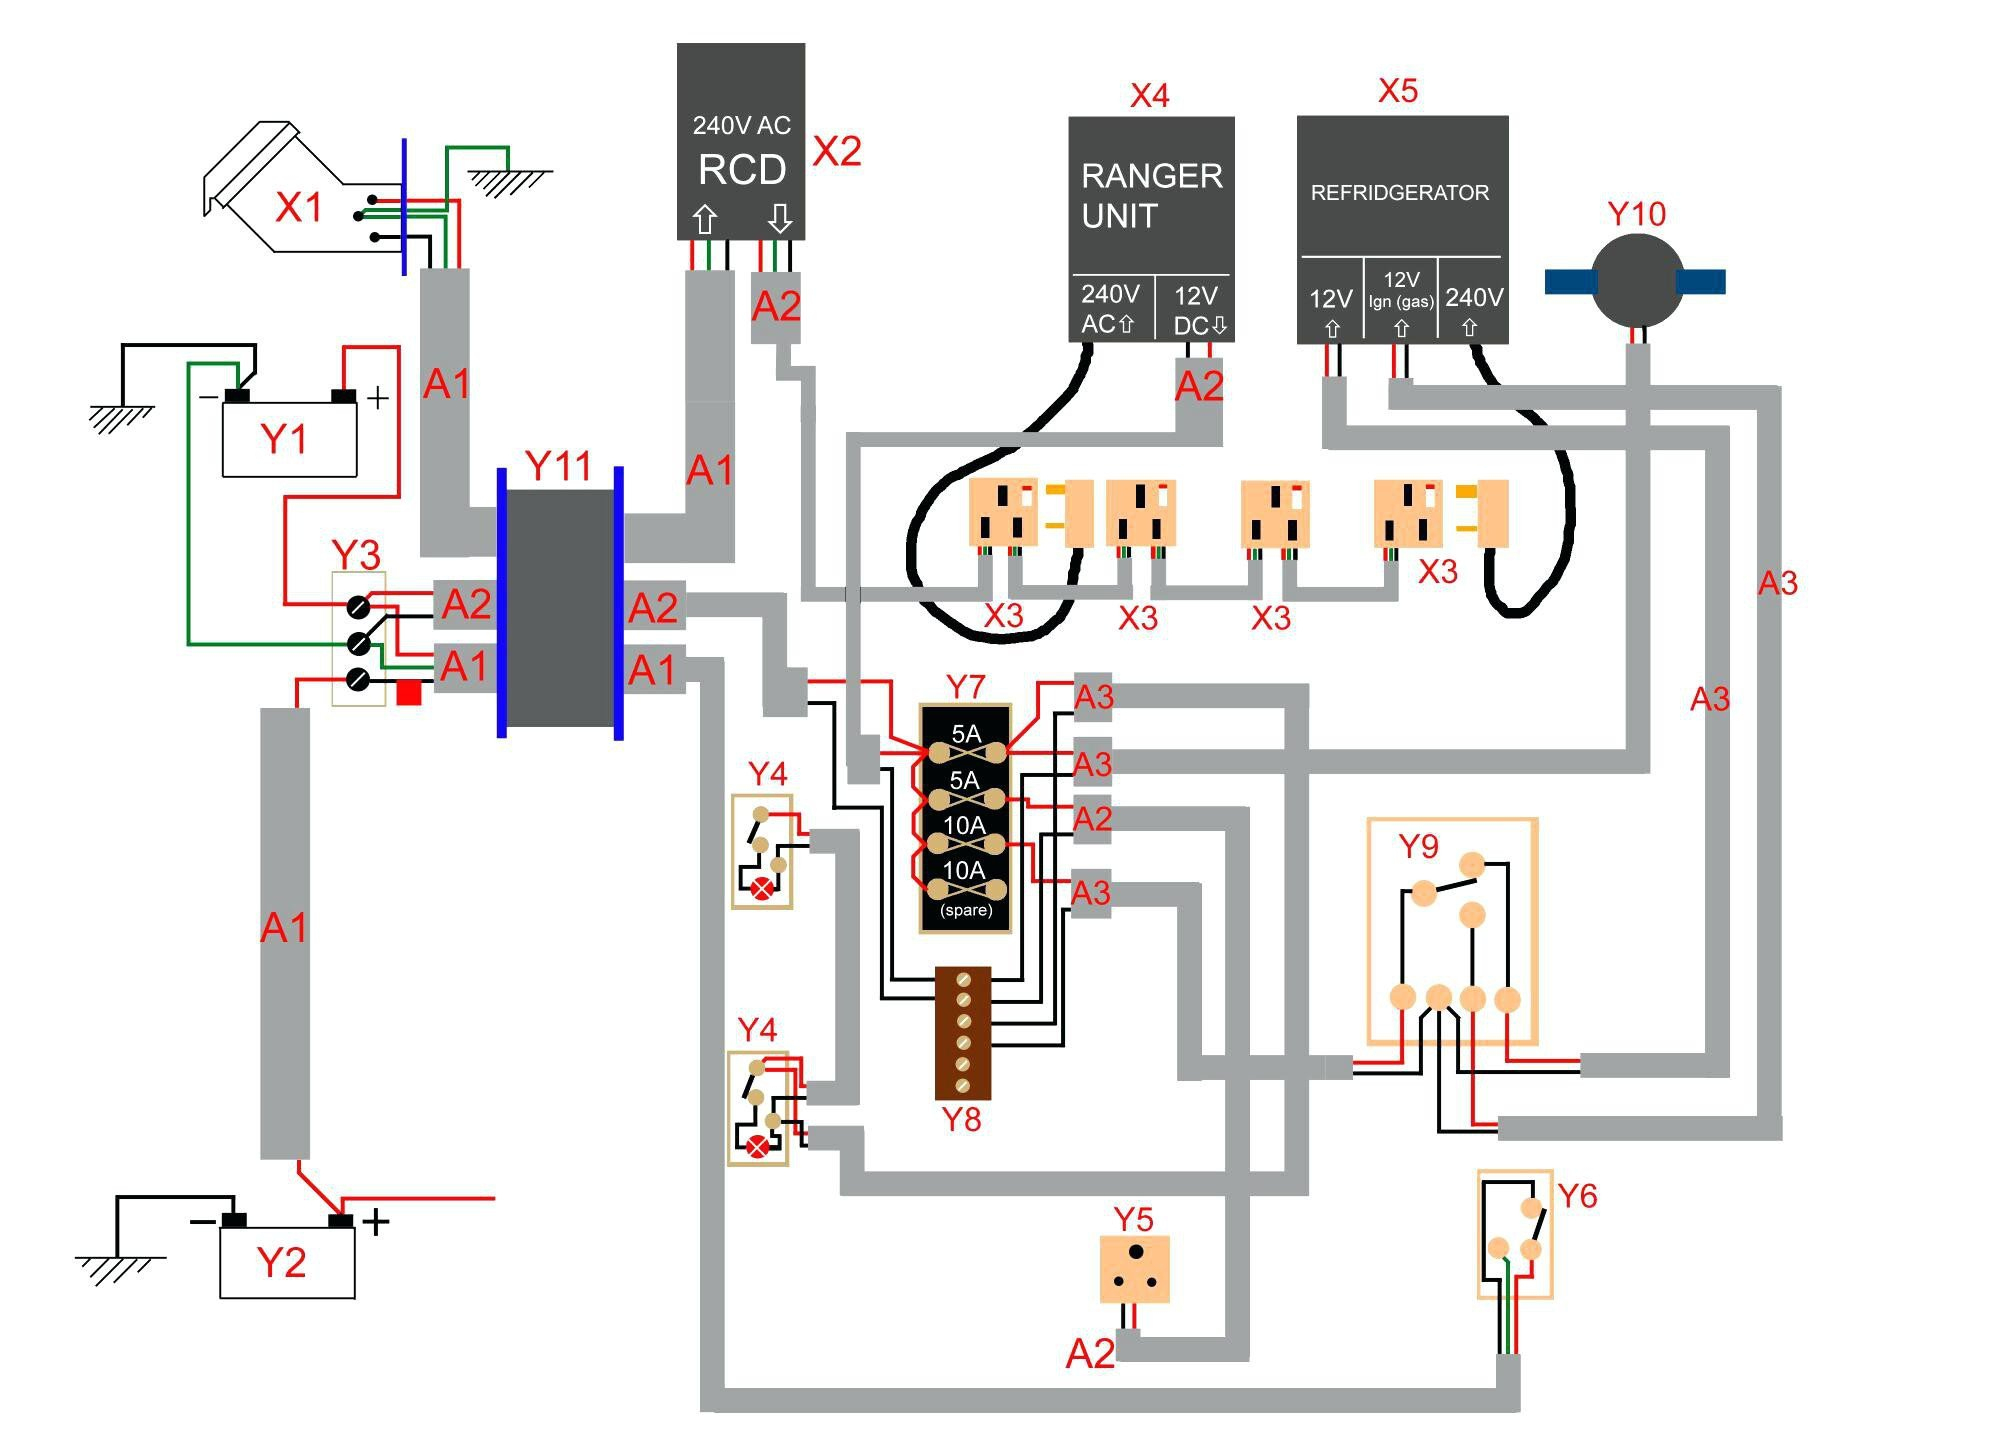 Dometic Capacitive Touch Thermostat Wiring Diagram Elegant - Dometic Capacitive Touch Thermostat Wiring Diagram